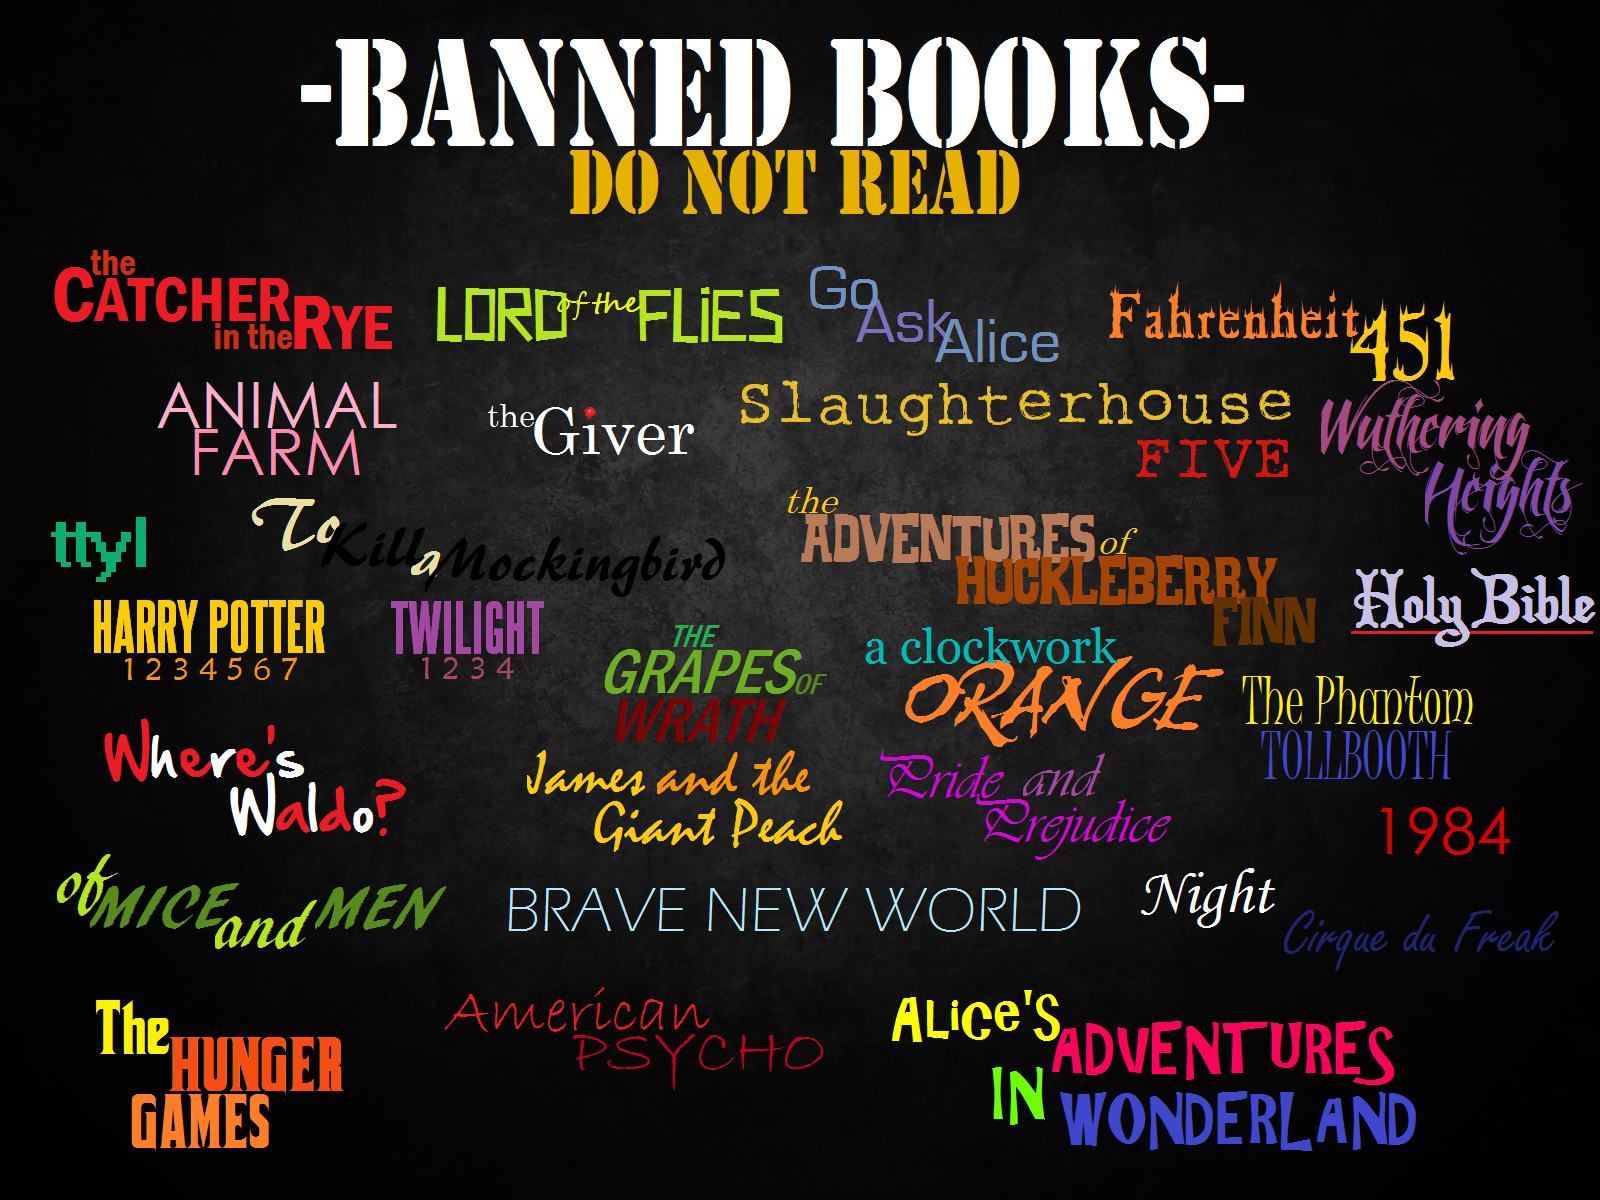 an analysis of banned books and censored literature in the united states Video: book censorship: history & statistics  people have censored books on religious,  in the united states,.